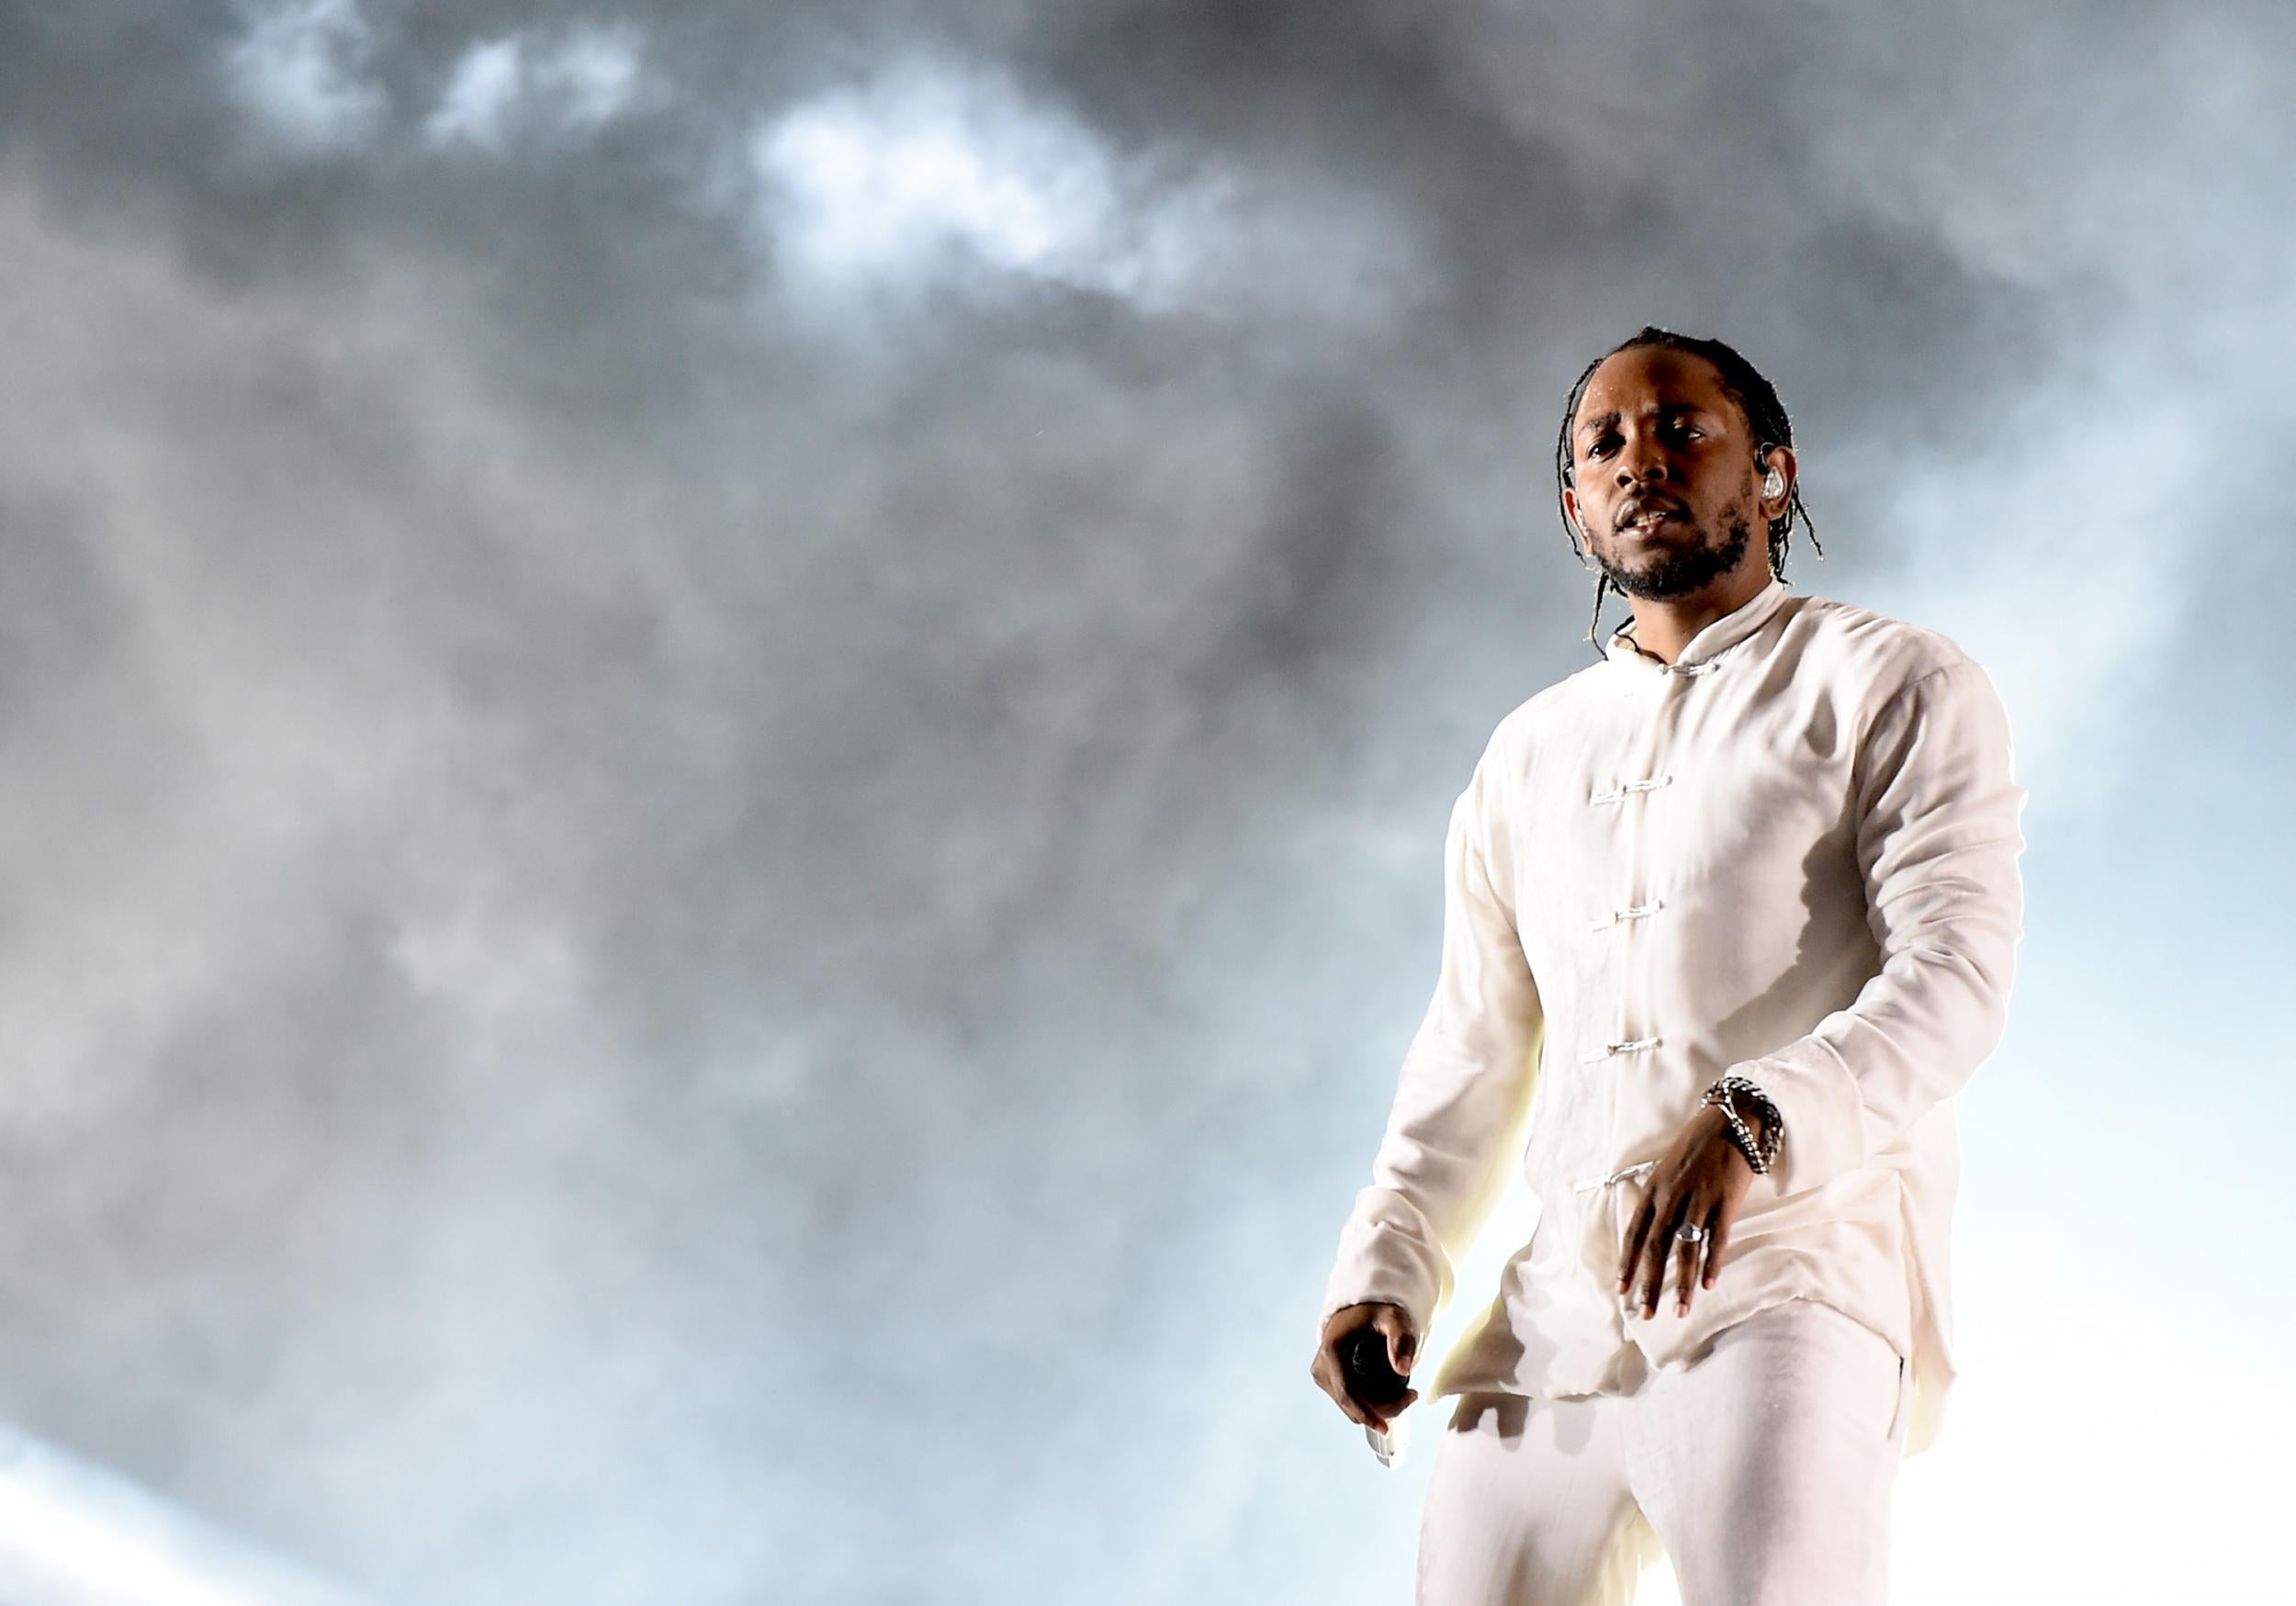 Will Kendrick Lamar finally get his Grammy award for Album of the Year?